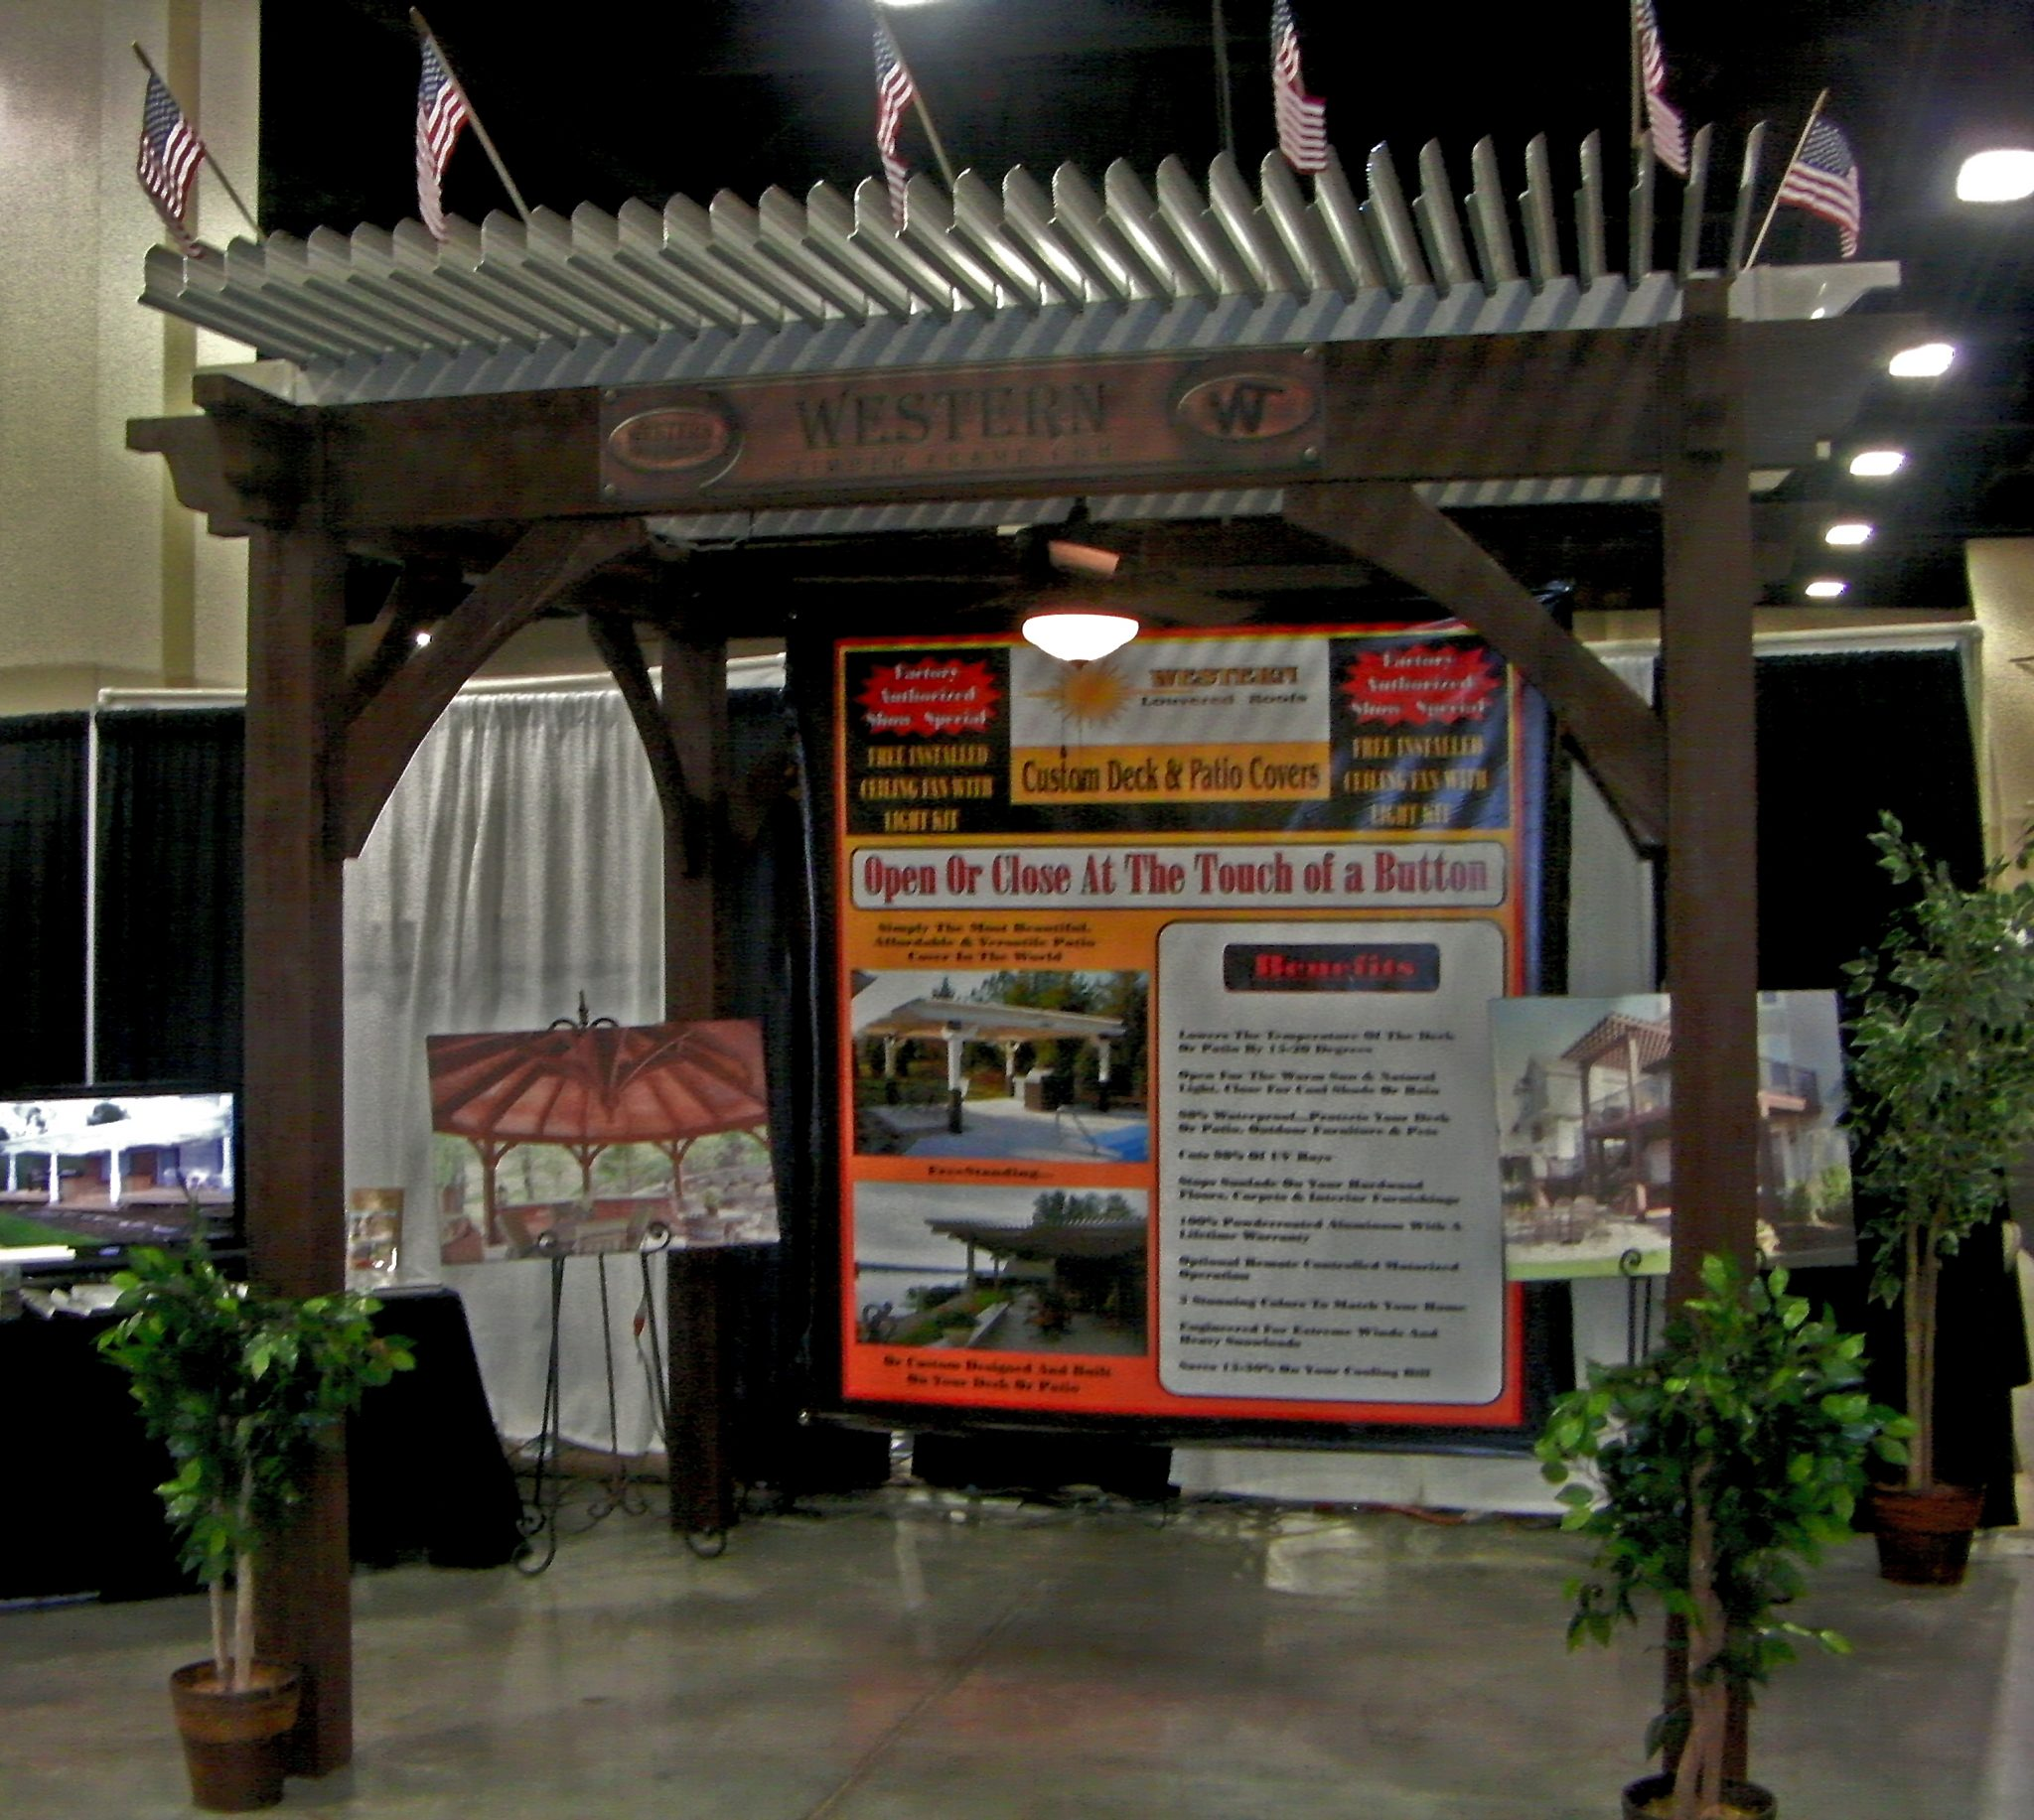 and the winner of the western timber frame pergola kit is